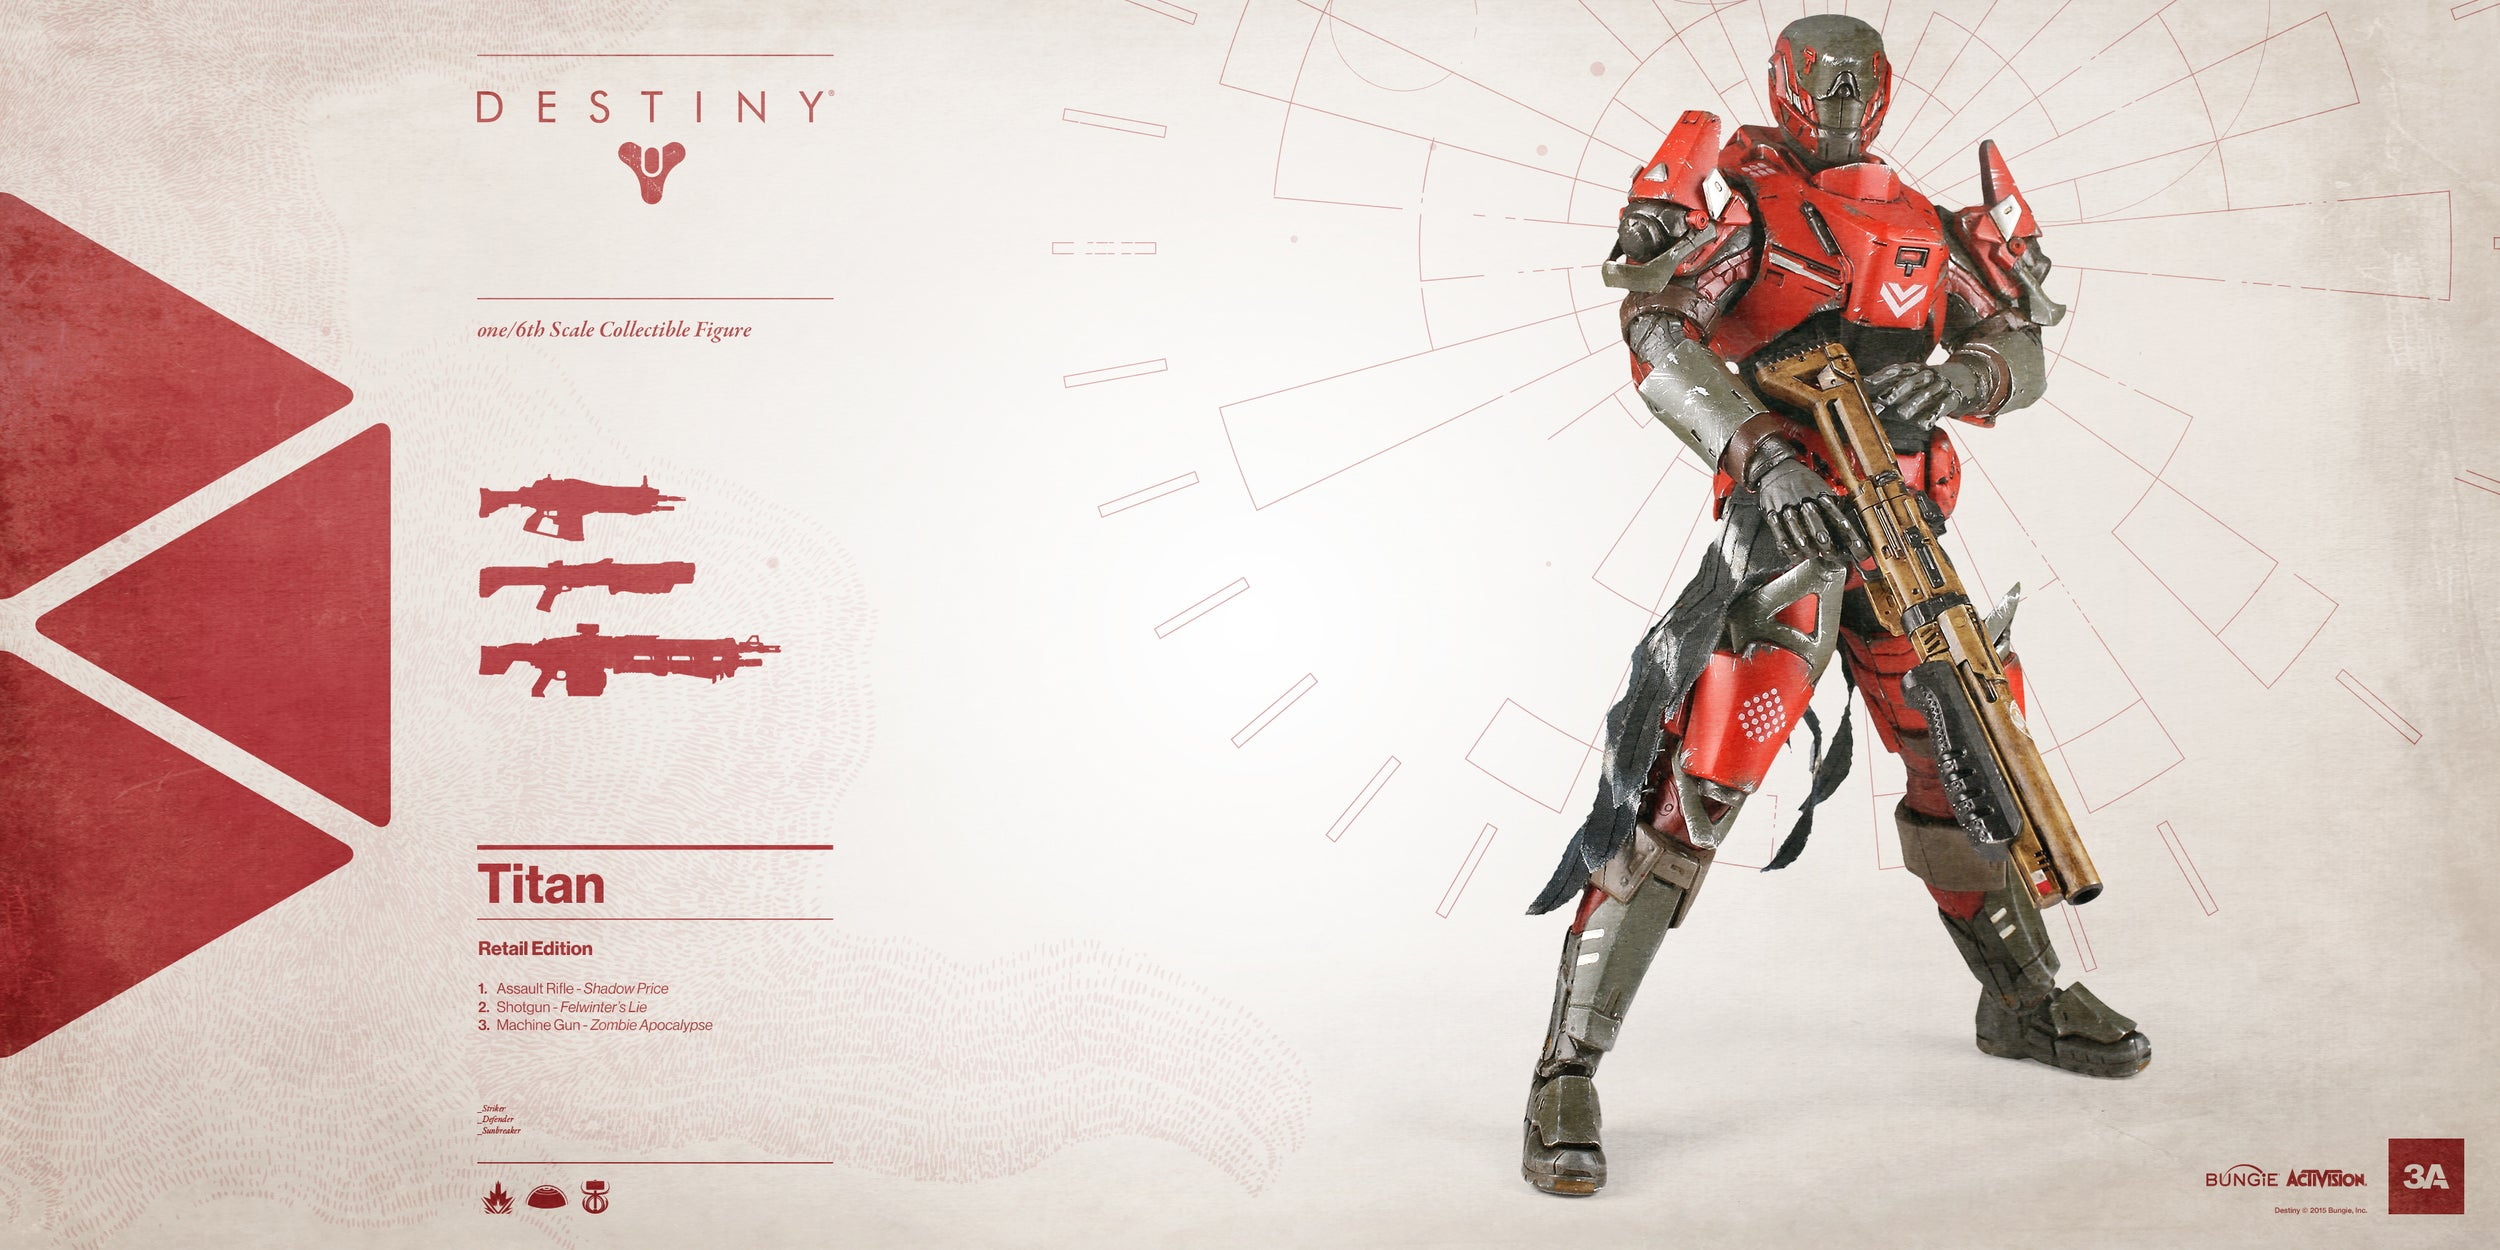 Destiny Fans, Here's Your Christmas Present